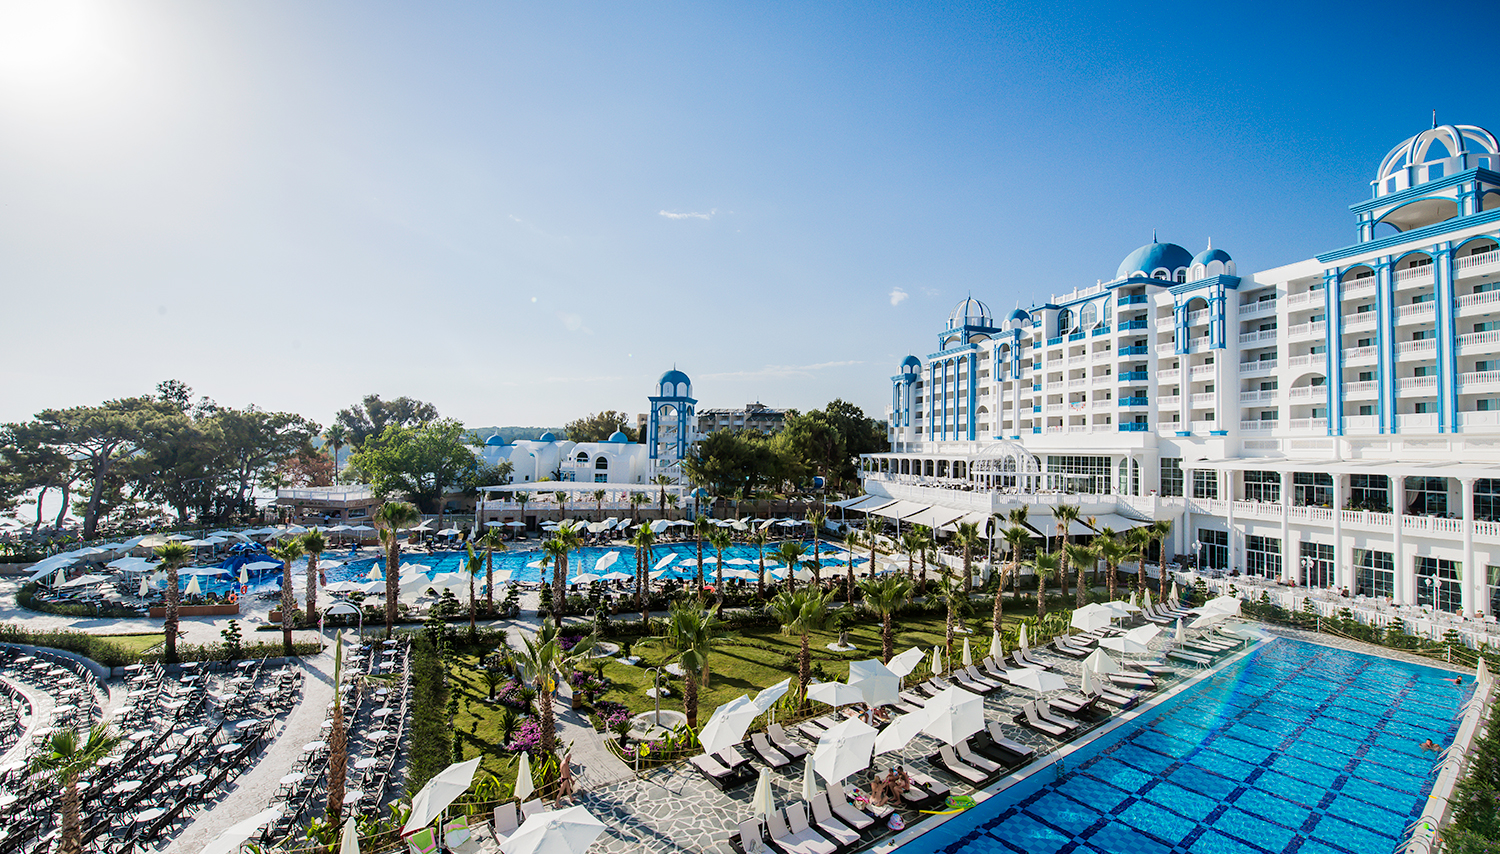 Rubi Platinum SPA Resort & Suites hotell (Antalya, Türgi)